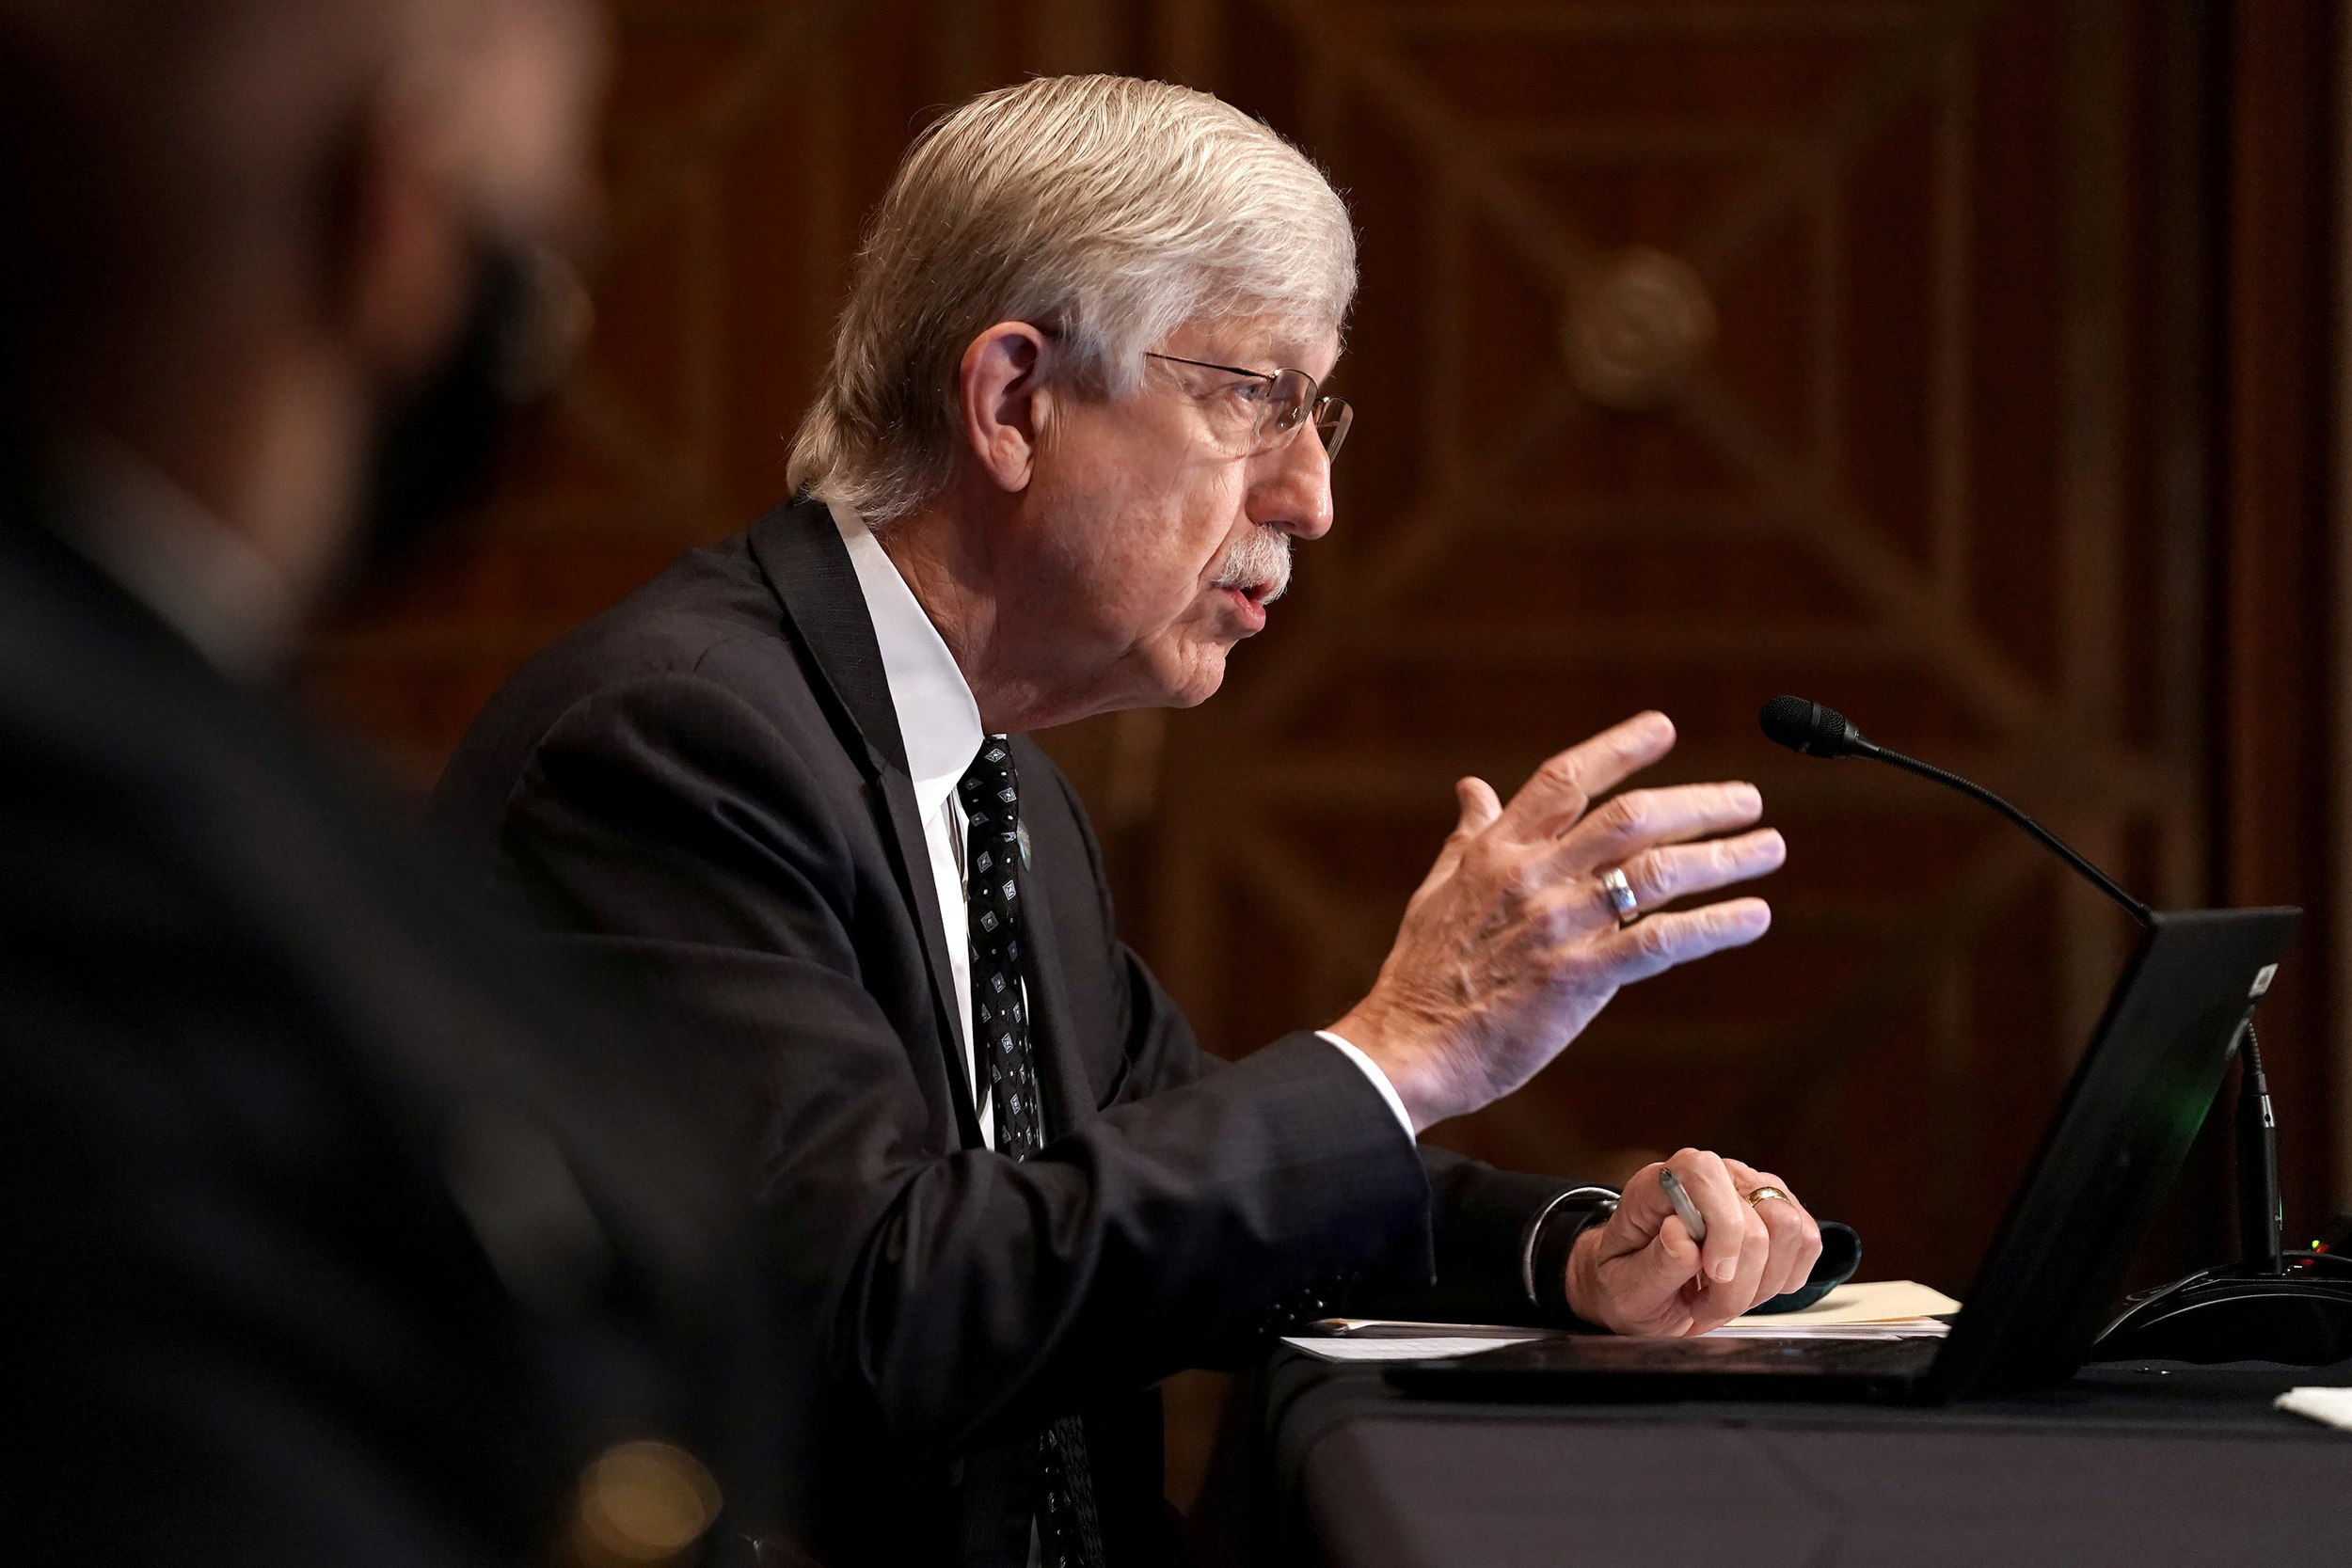 National Institutes of Health director Francis Collins to step down